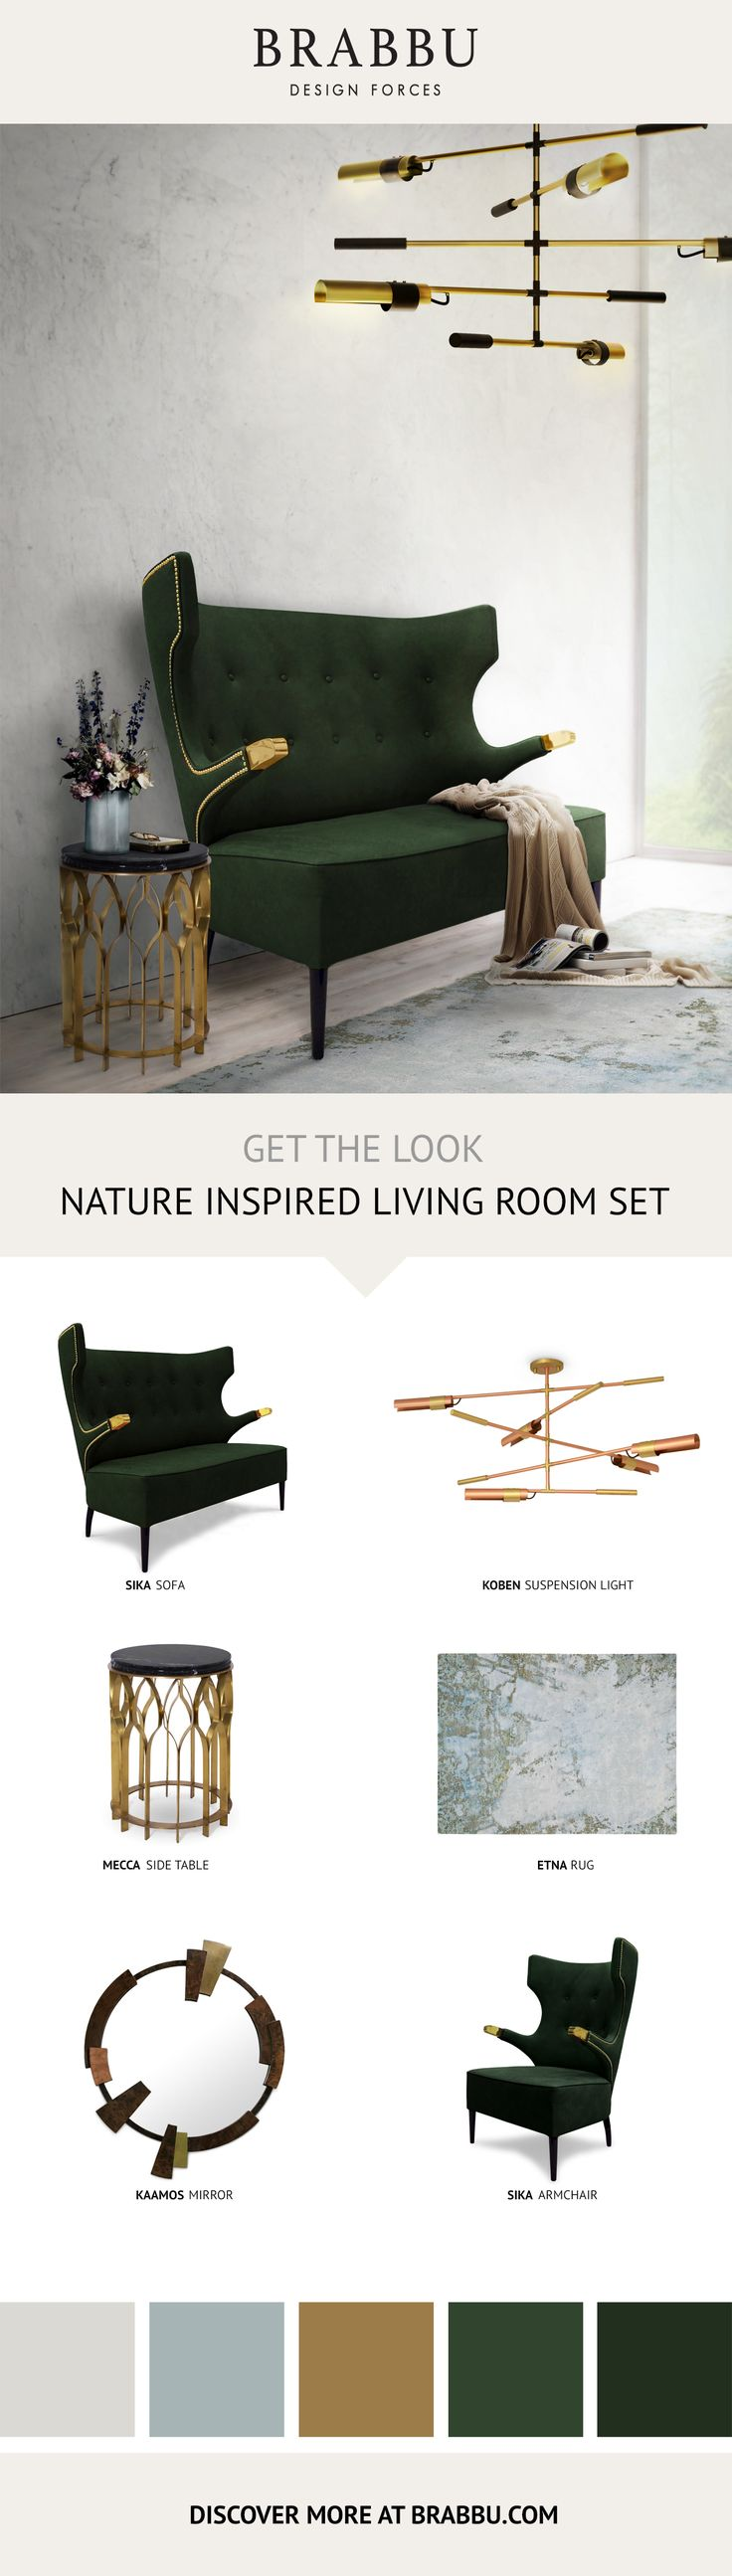 Get the look nature inspired living room set living room ideas by brabbu